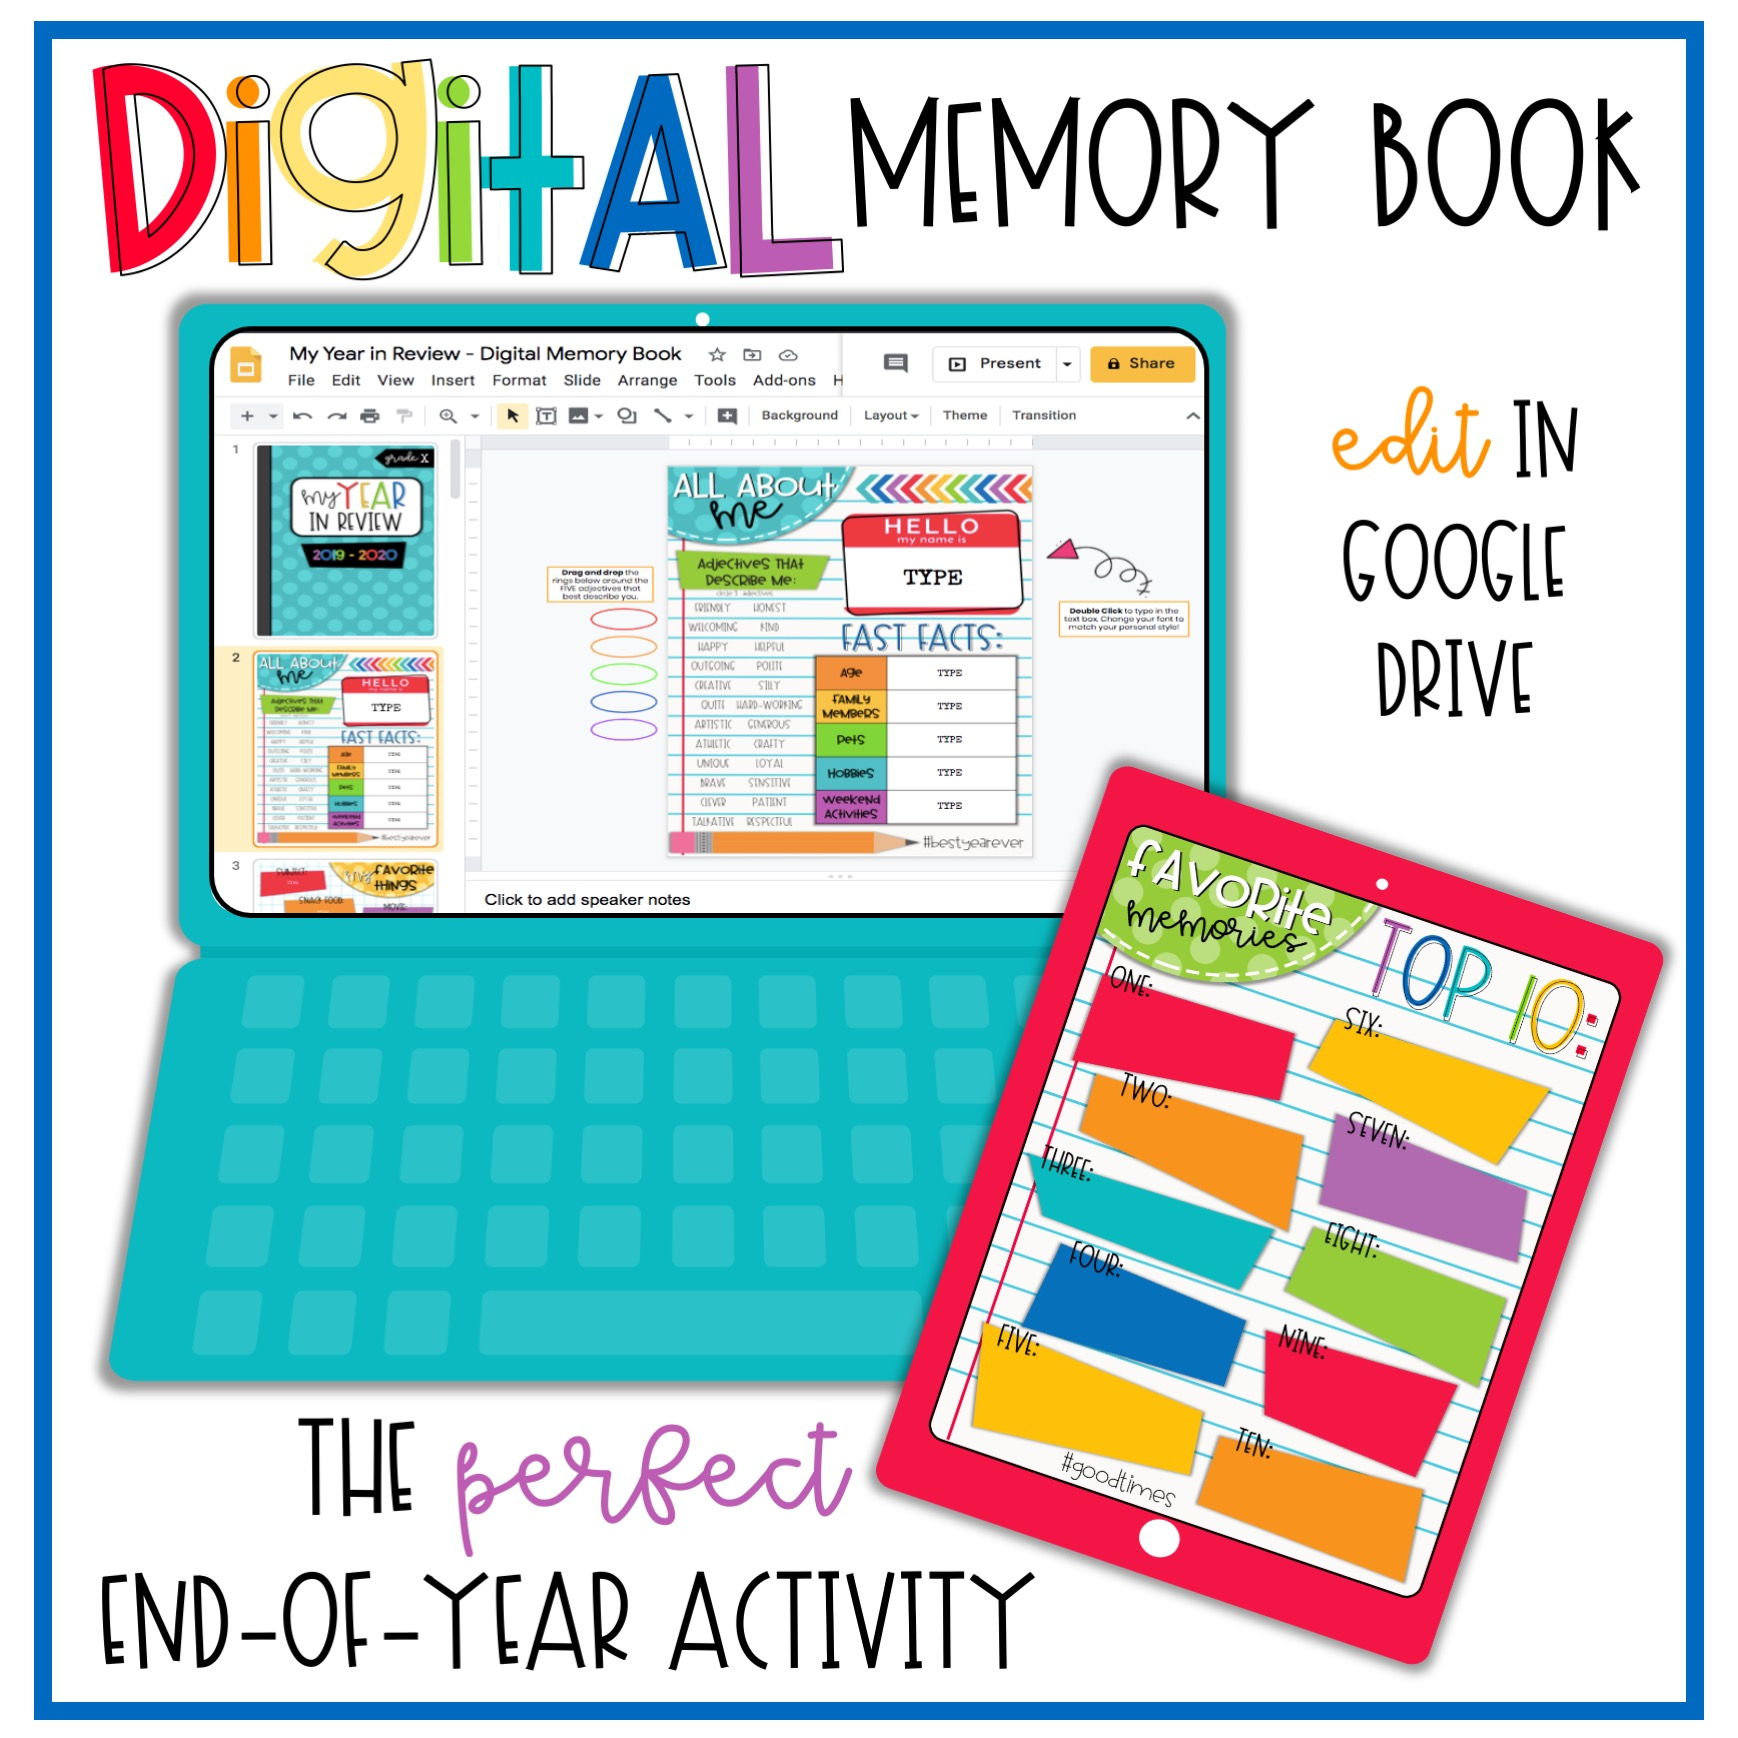 Digital memory book COVER 1